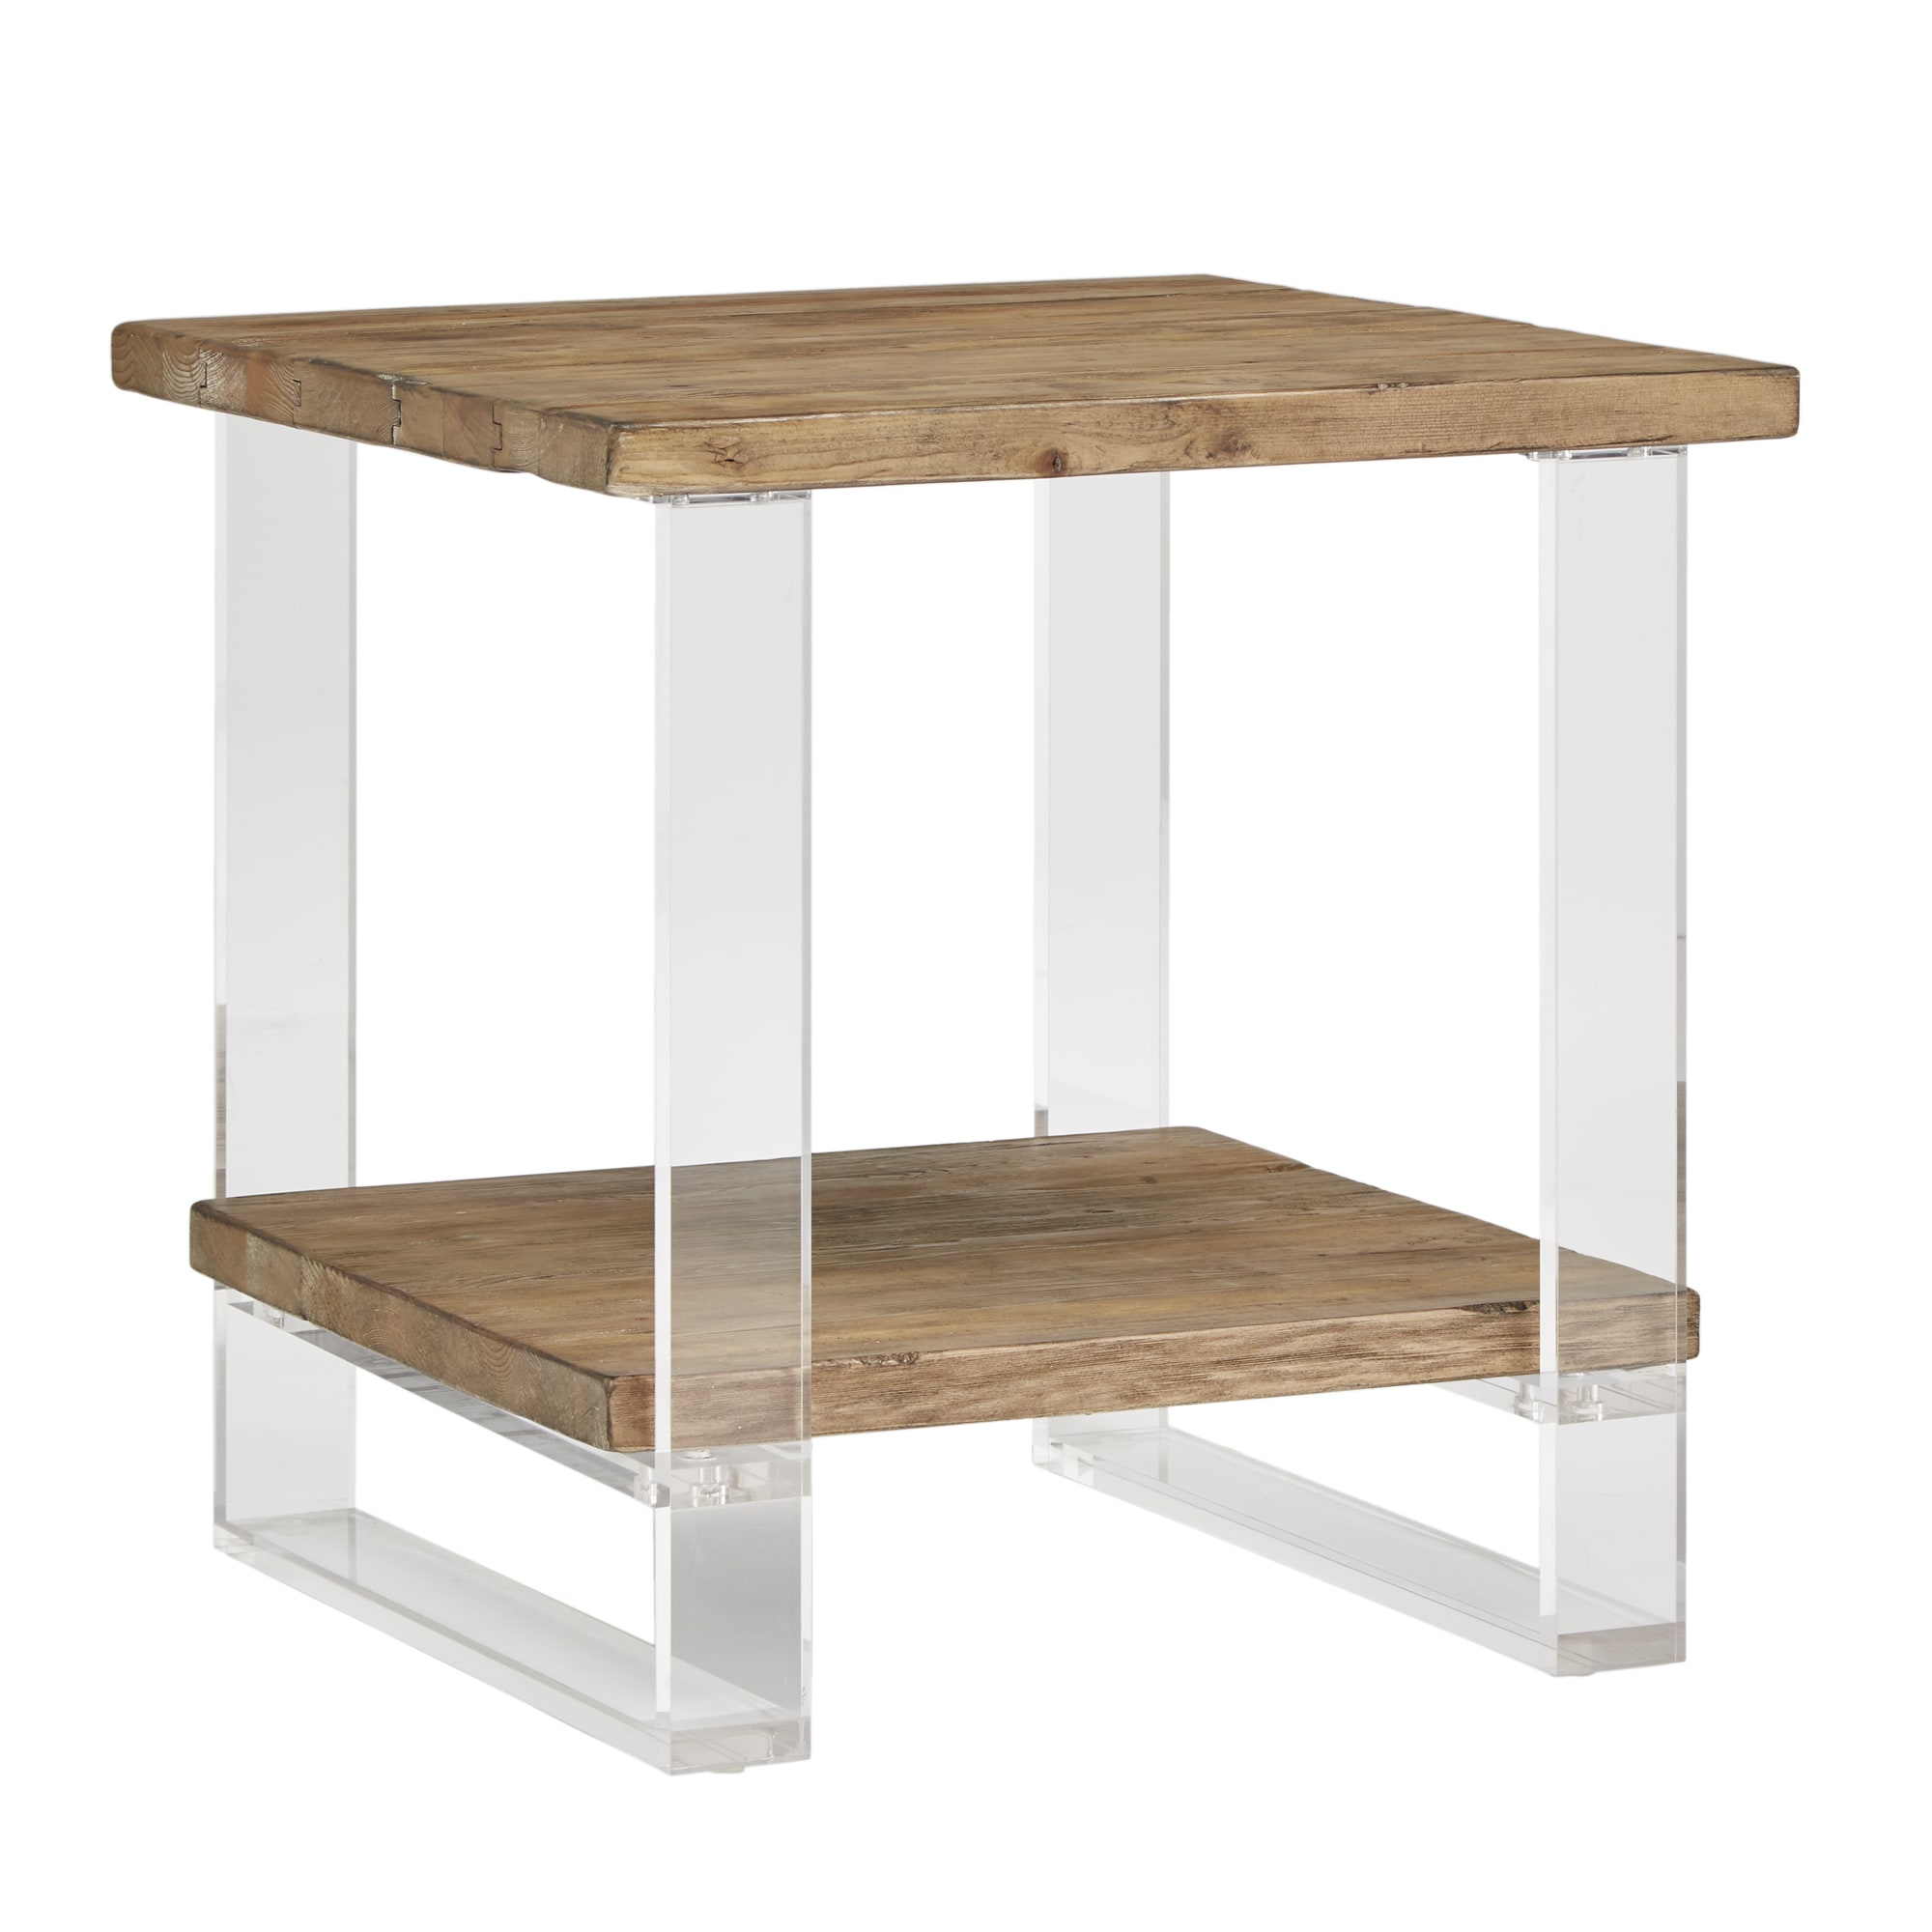 Shop annika reclaimed wood and acrylic end table by inspire q artisan free shipping today overstock com 22541478